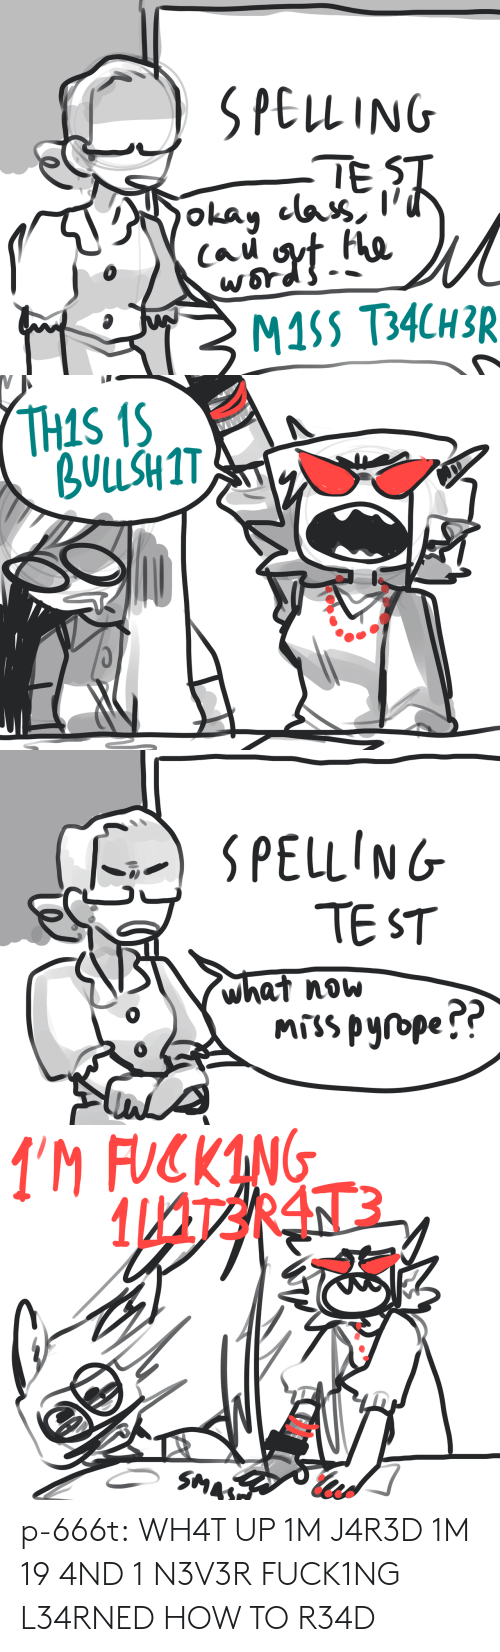 Fucking, Target, and Tumblr: SPELLING  IE   THIS 1S  ULLSH1T   SPELLING  TE ST  what noW  MTss pyrope!   'M FUCKING p-666t: WH4T UP 1M J4R3D 1M 19 4ND 1 N3V3R FUCK1NG L34RNED HOW TO R34D